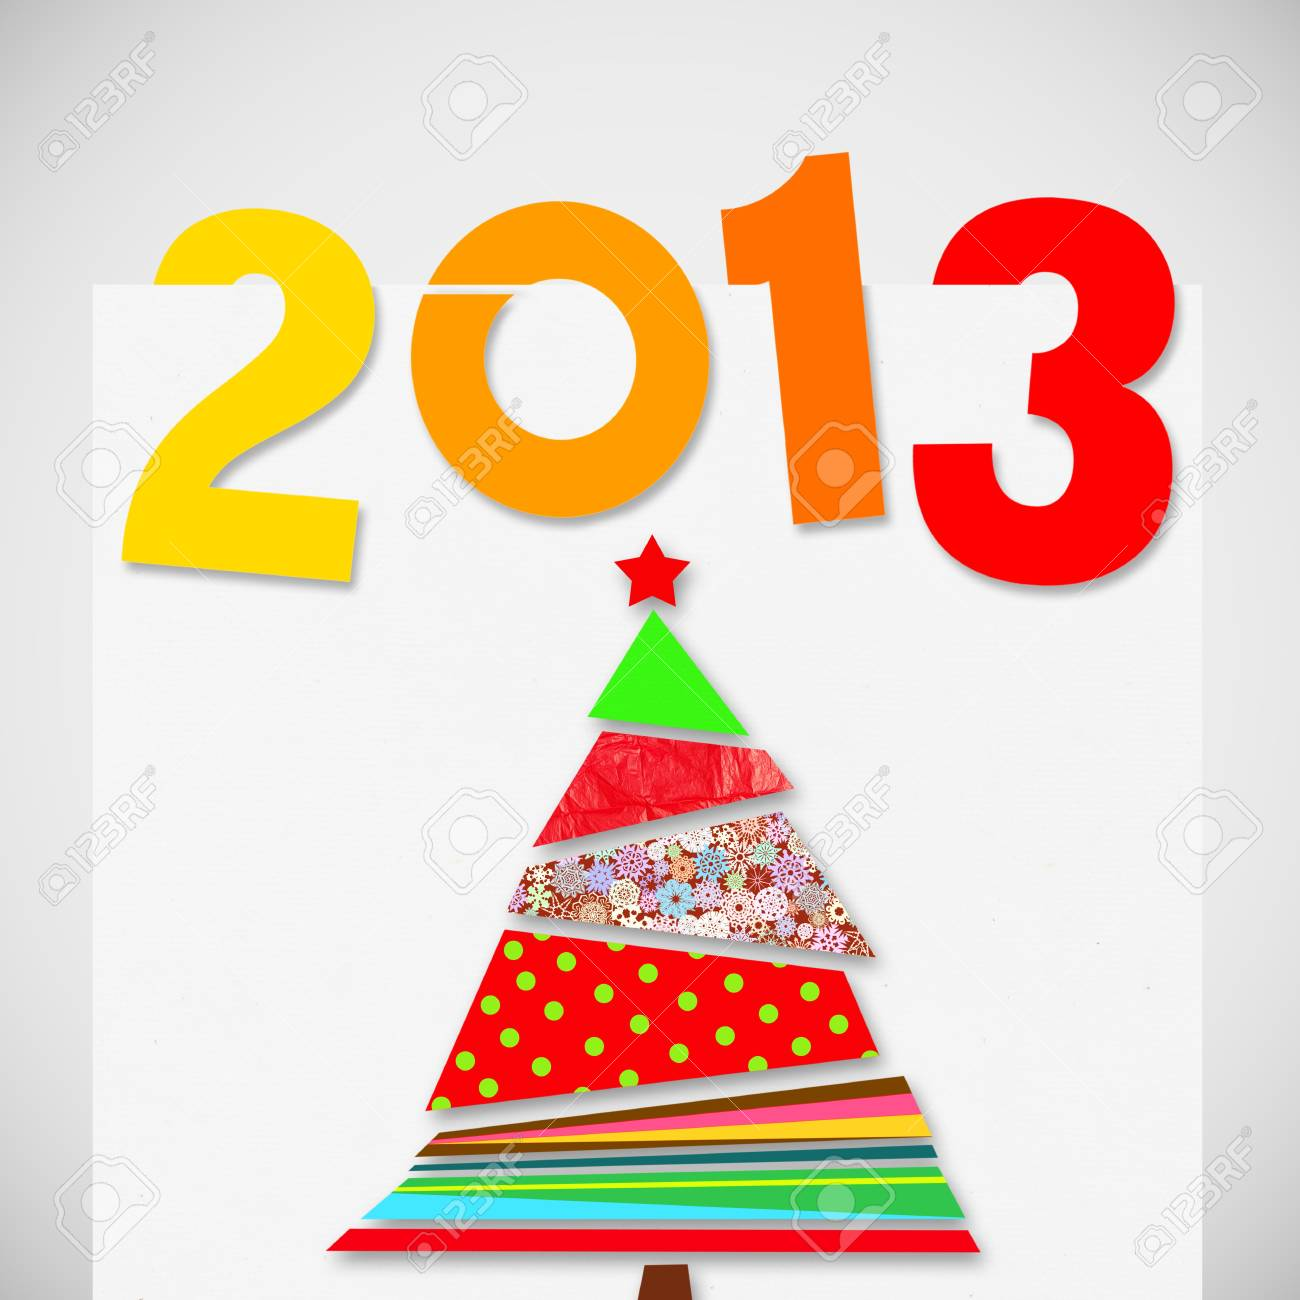 merry christmas and happy new year 2013 Stock Photo - 15174381